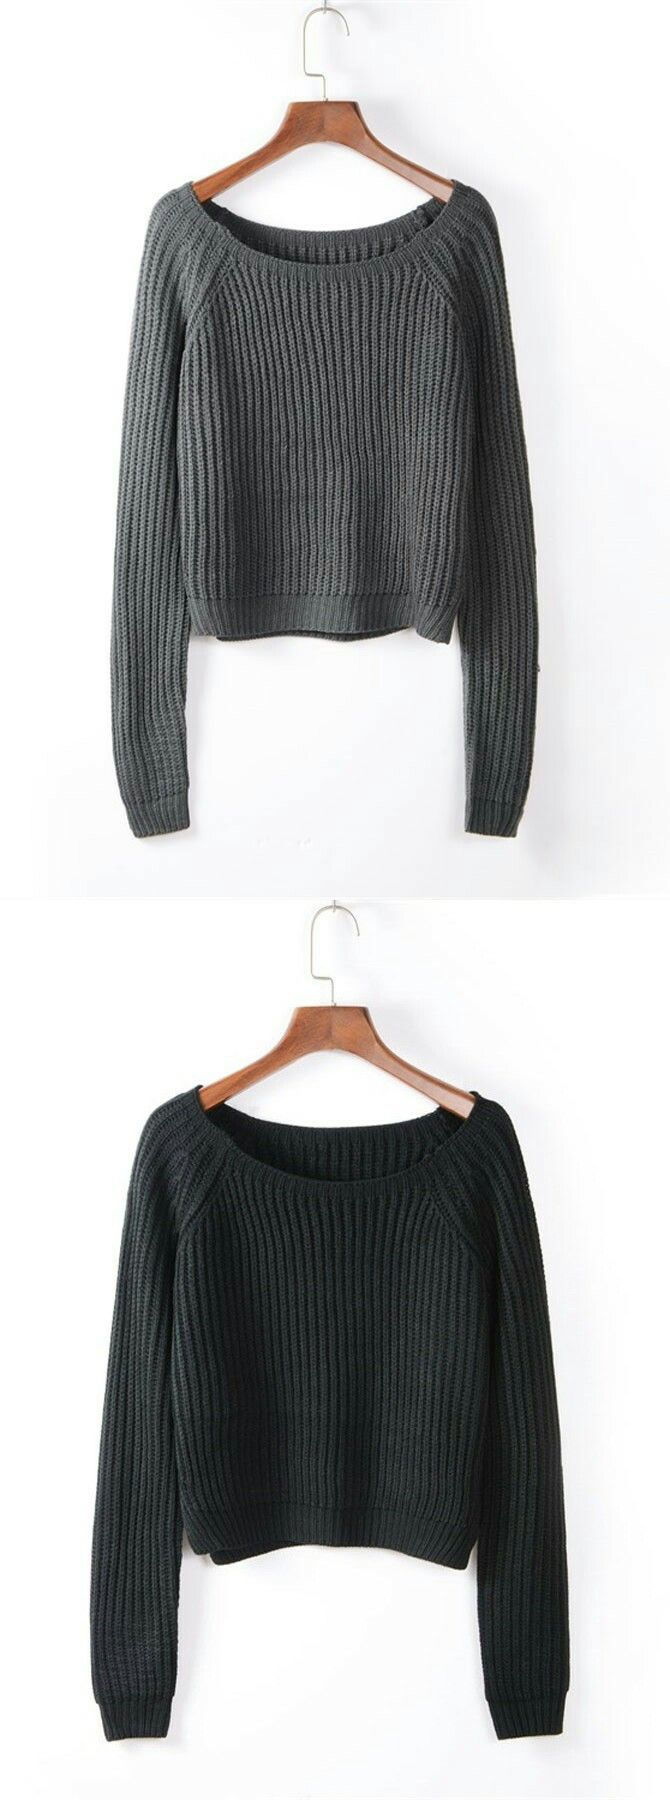 Short Round Neck Cotton Medium Black Sweater | Outfit winter ...